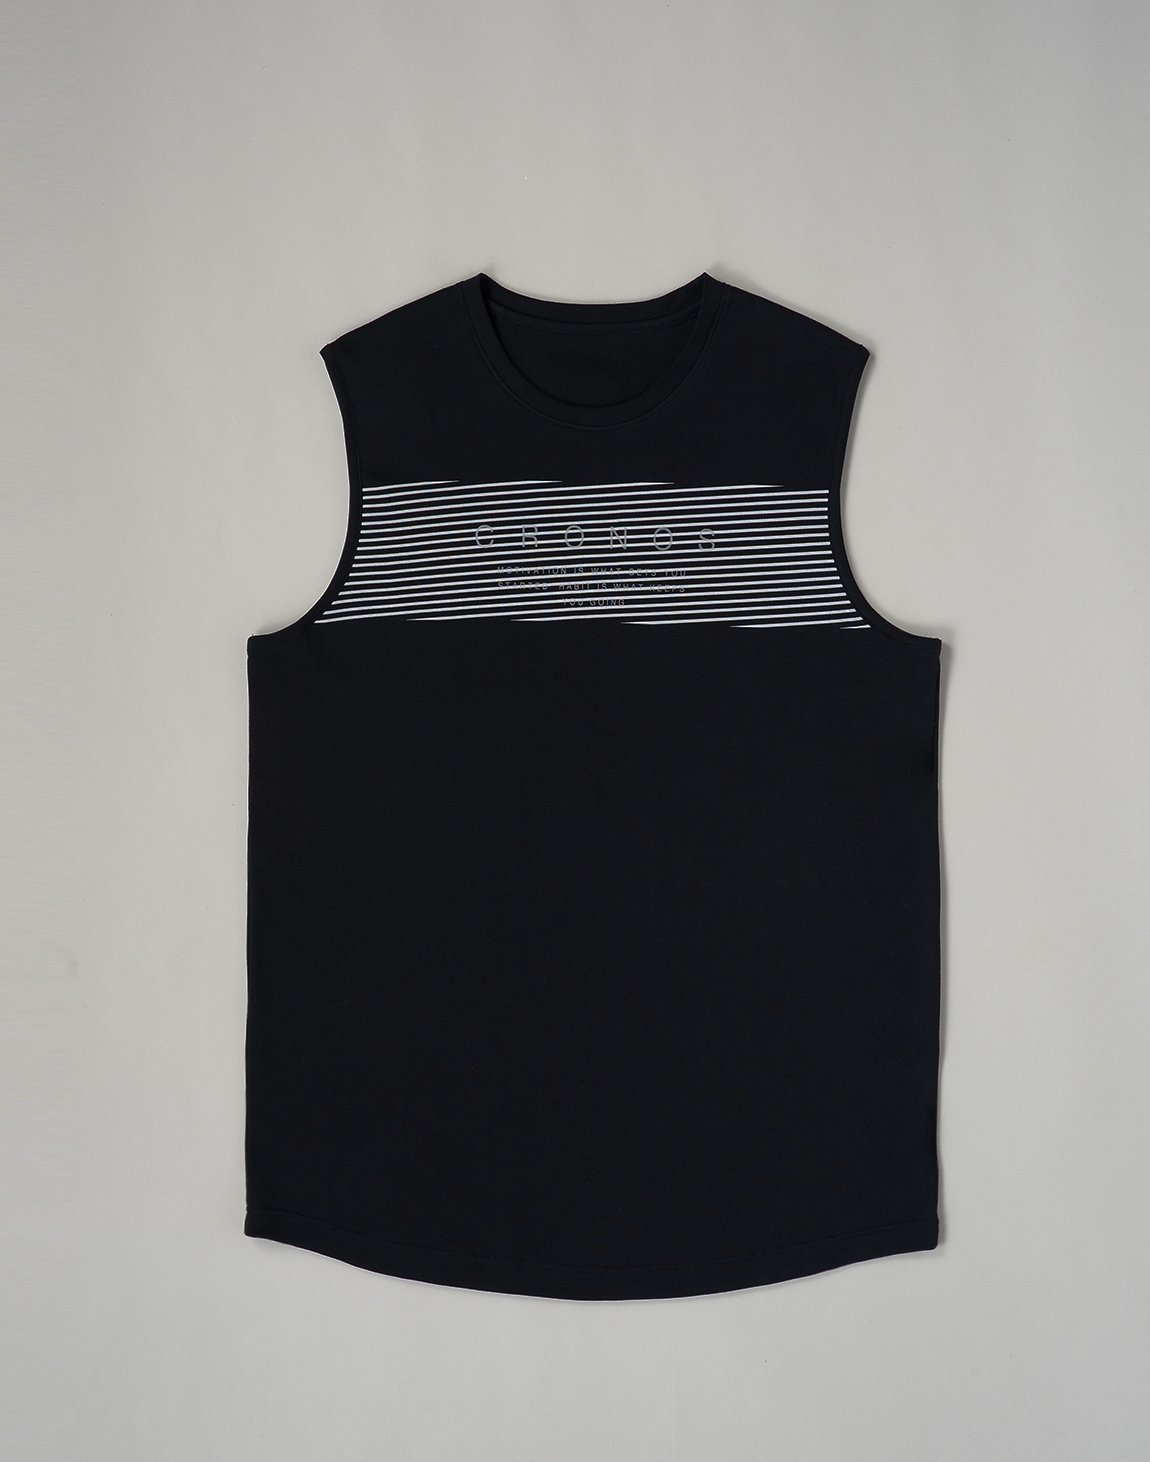 <img class='new_mark_img1' src='https://img.shop-pro.jp/img/new/icons1.gif' style='border:none;display:inline;margin:0px;padding:0px;width:auto;' />CRONOS PARALLEL LINE LOGO  MUSLE TOP【BLACK】